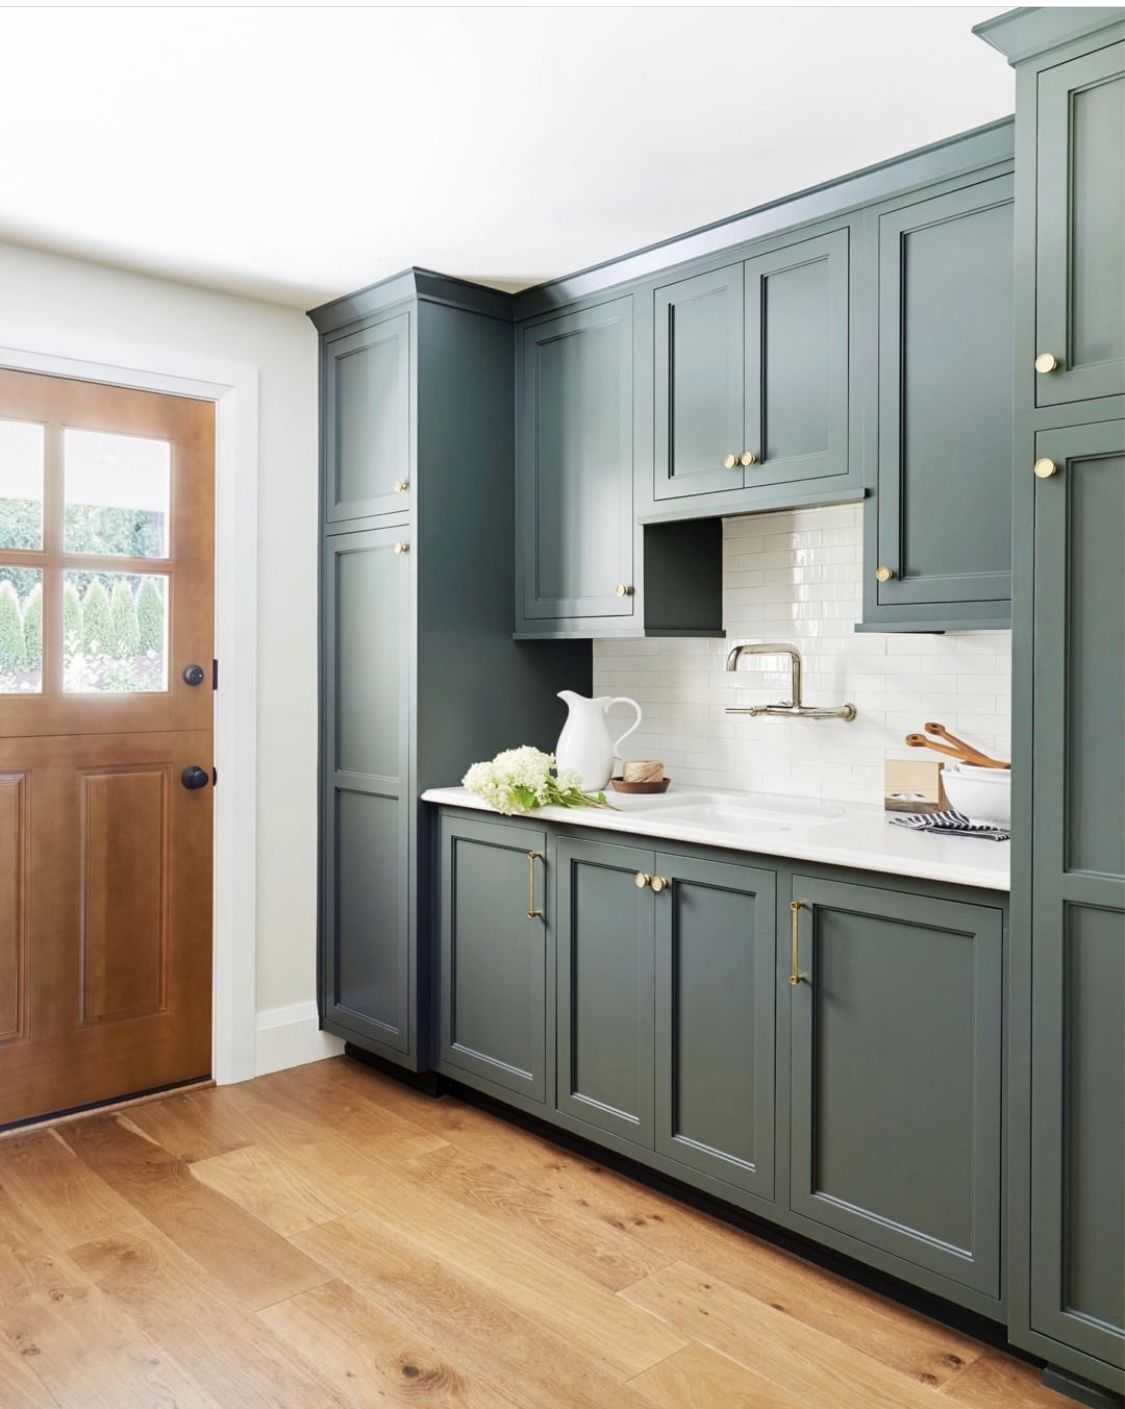 Pewter Green By Sherwin Williams Mudroom Cabinets Green Cabinets Home